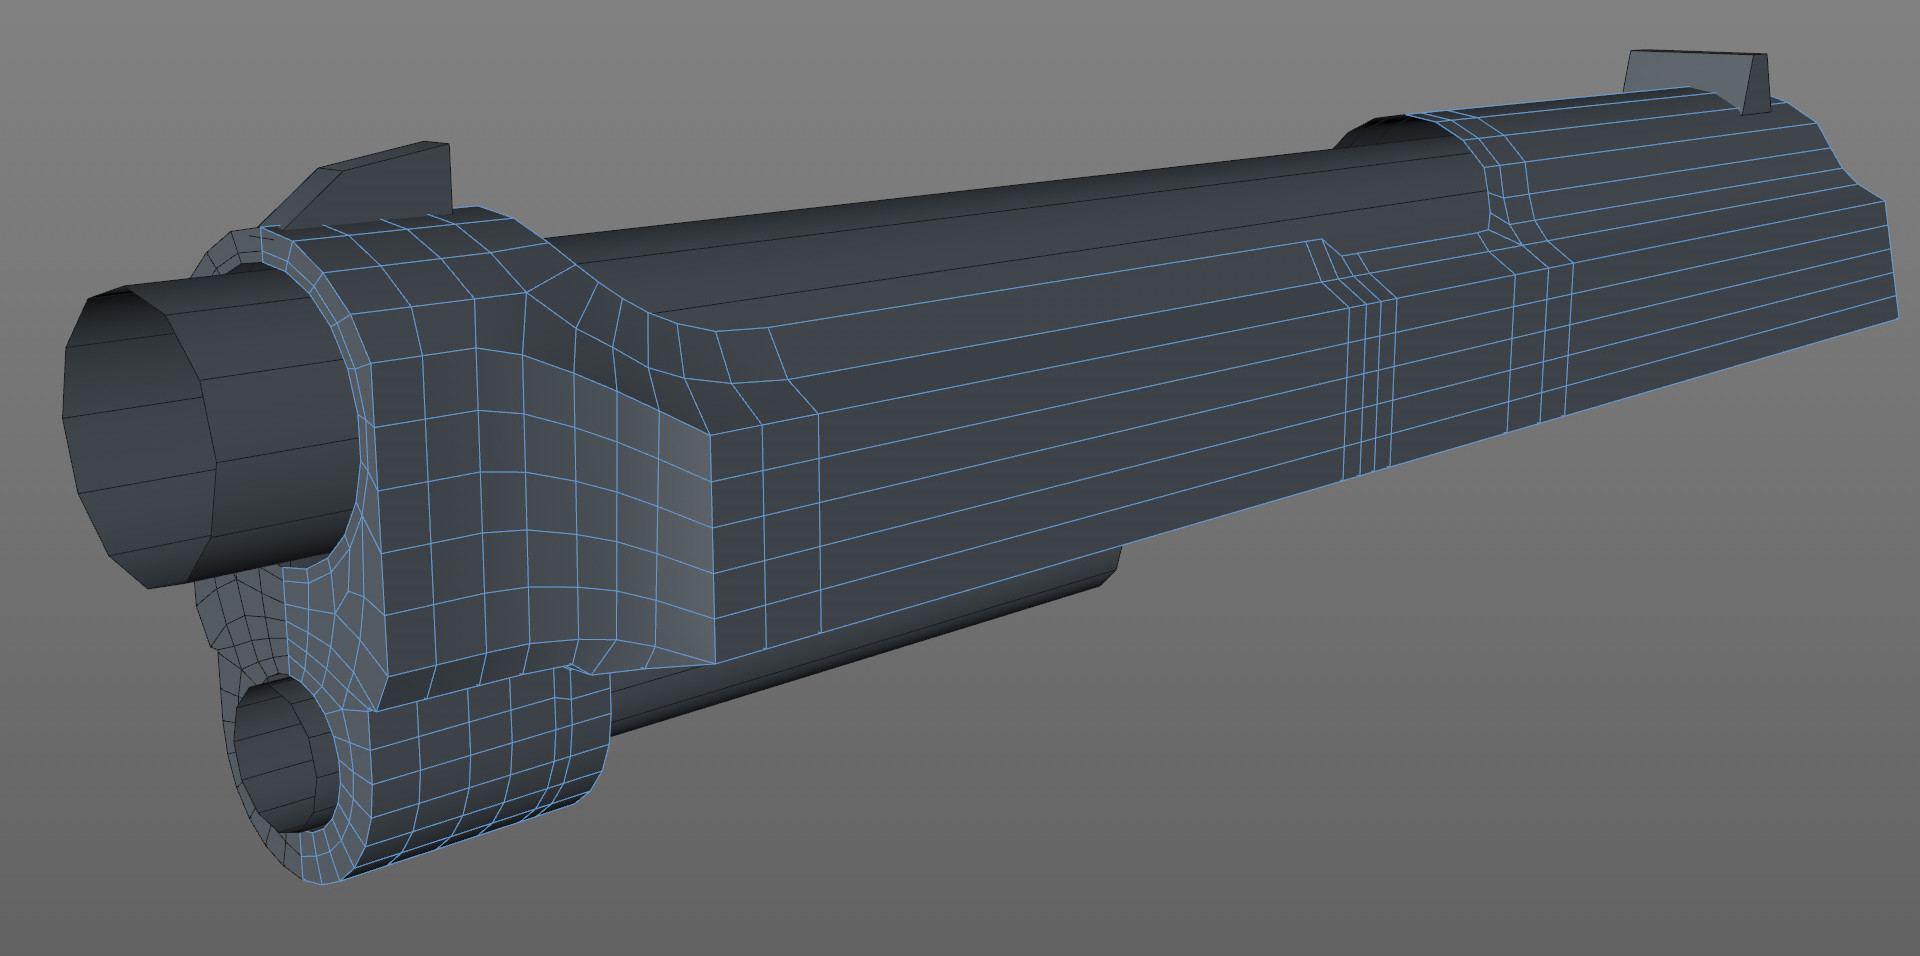 Further progress with the slide. Keeping good edge flow to allow for easy sharpening.